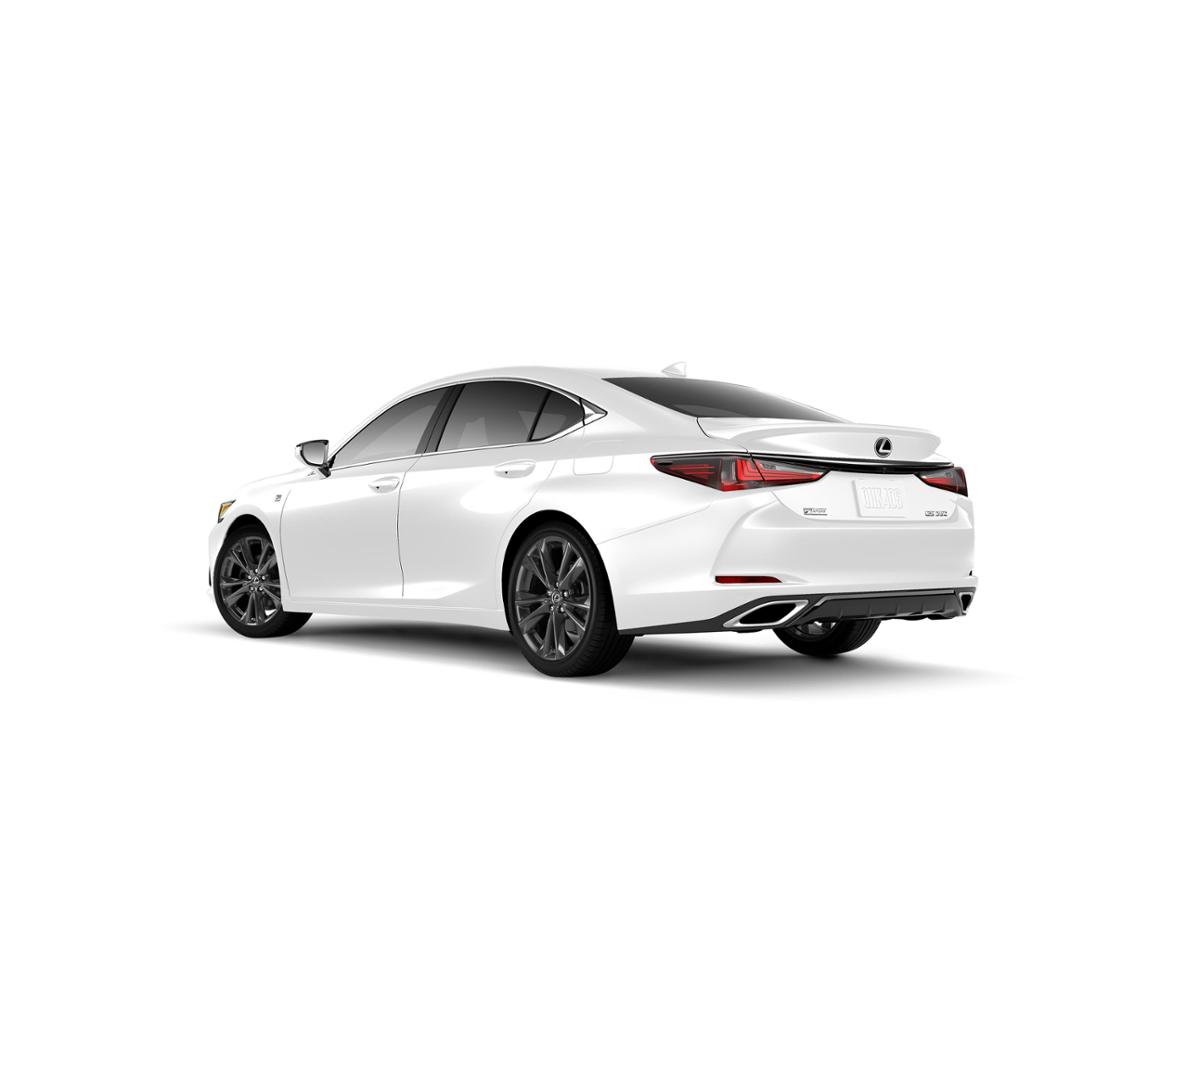 Fort Worth New 2019 Lexus ES 350 Ultra White: Car for Sale in DFW